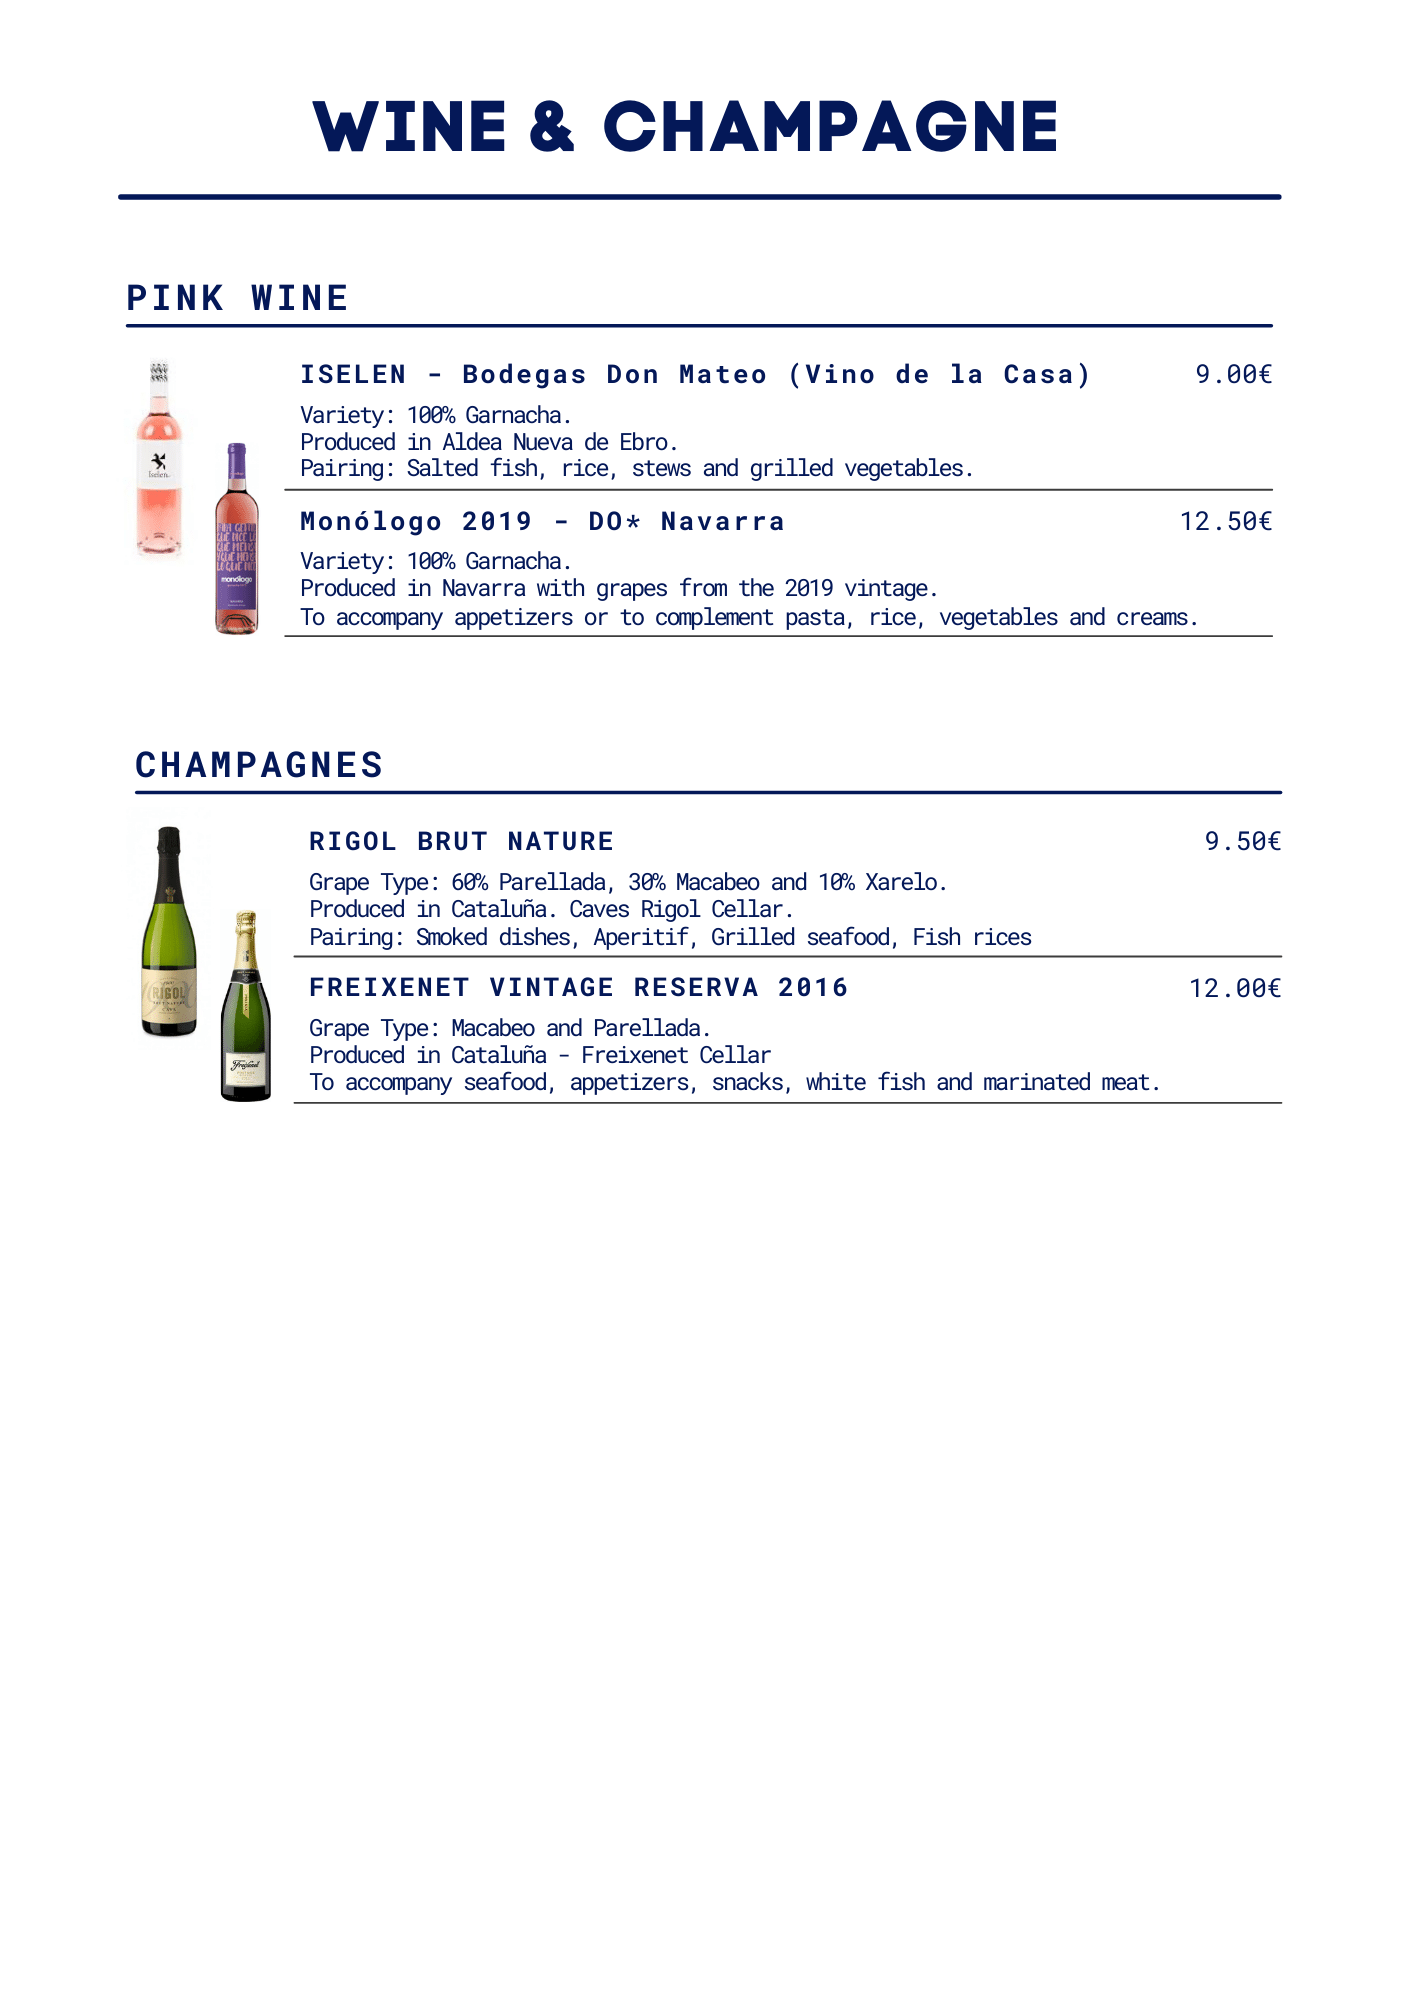 our wines and champagnes